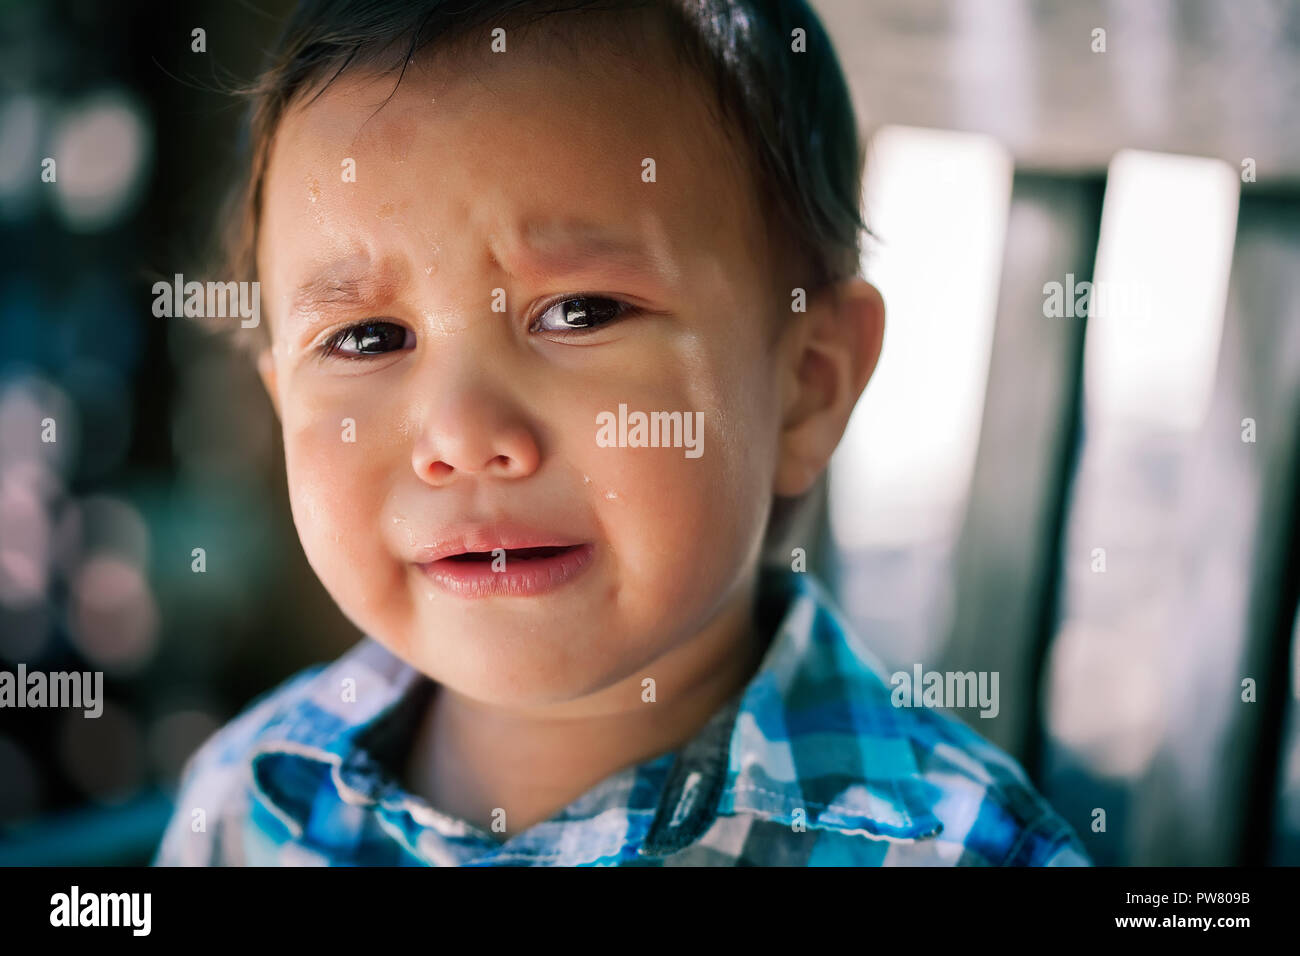 Young latino son, toddler age crying with tears in eyes looking lost or worried  with menacing looking background, expressing missing or hurt children - Stock Image